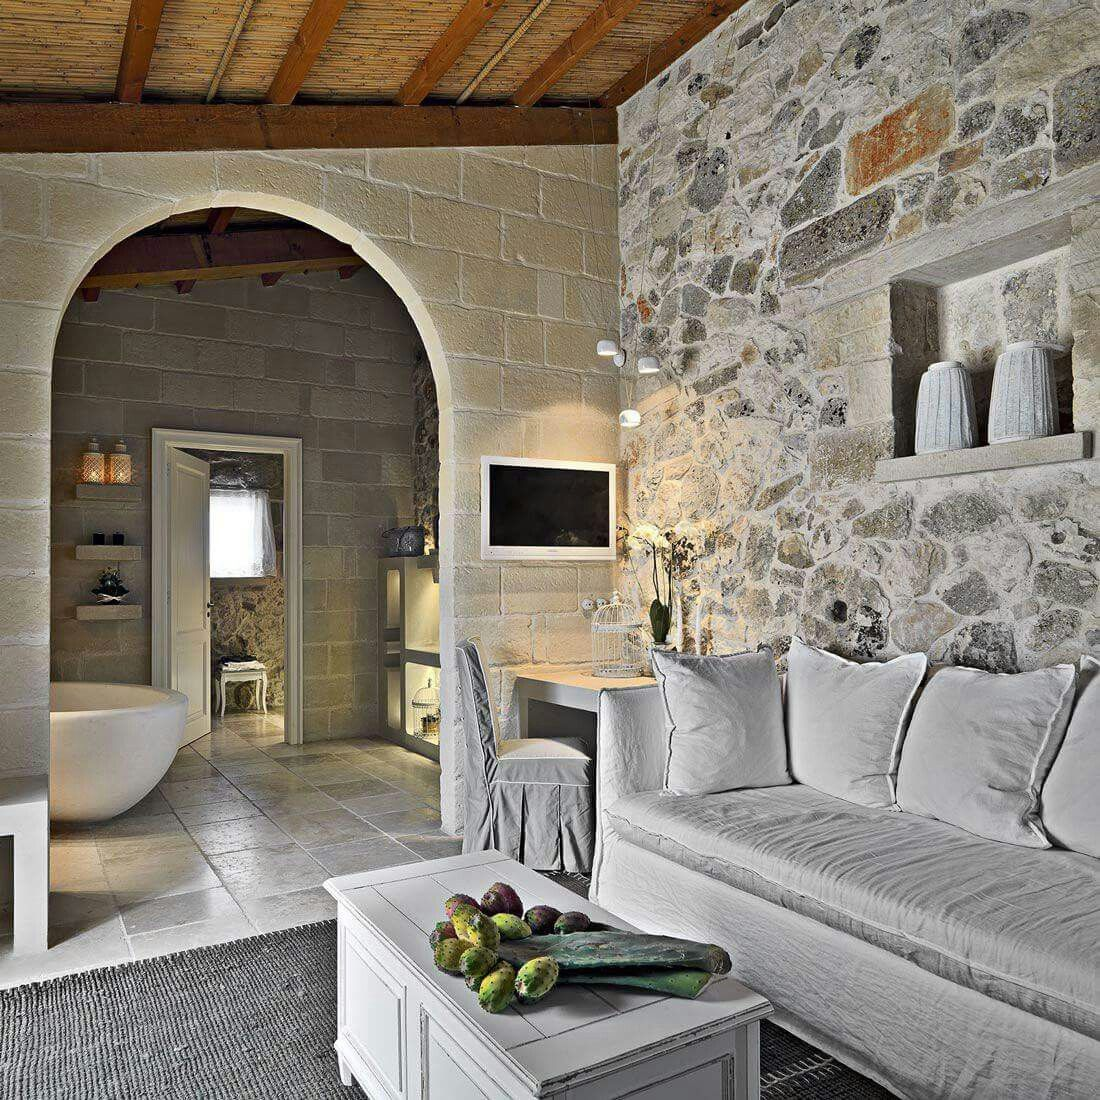 the relais masseria capasa is a stunning hotel located in martano italy originally constructed in the century the property was renovated by paolo - Rustic Hotel Decorating